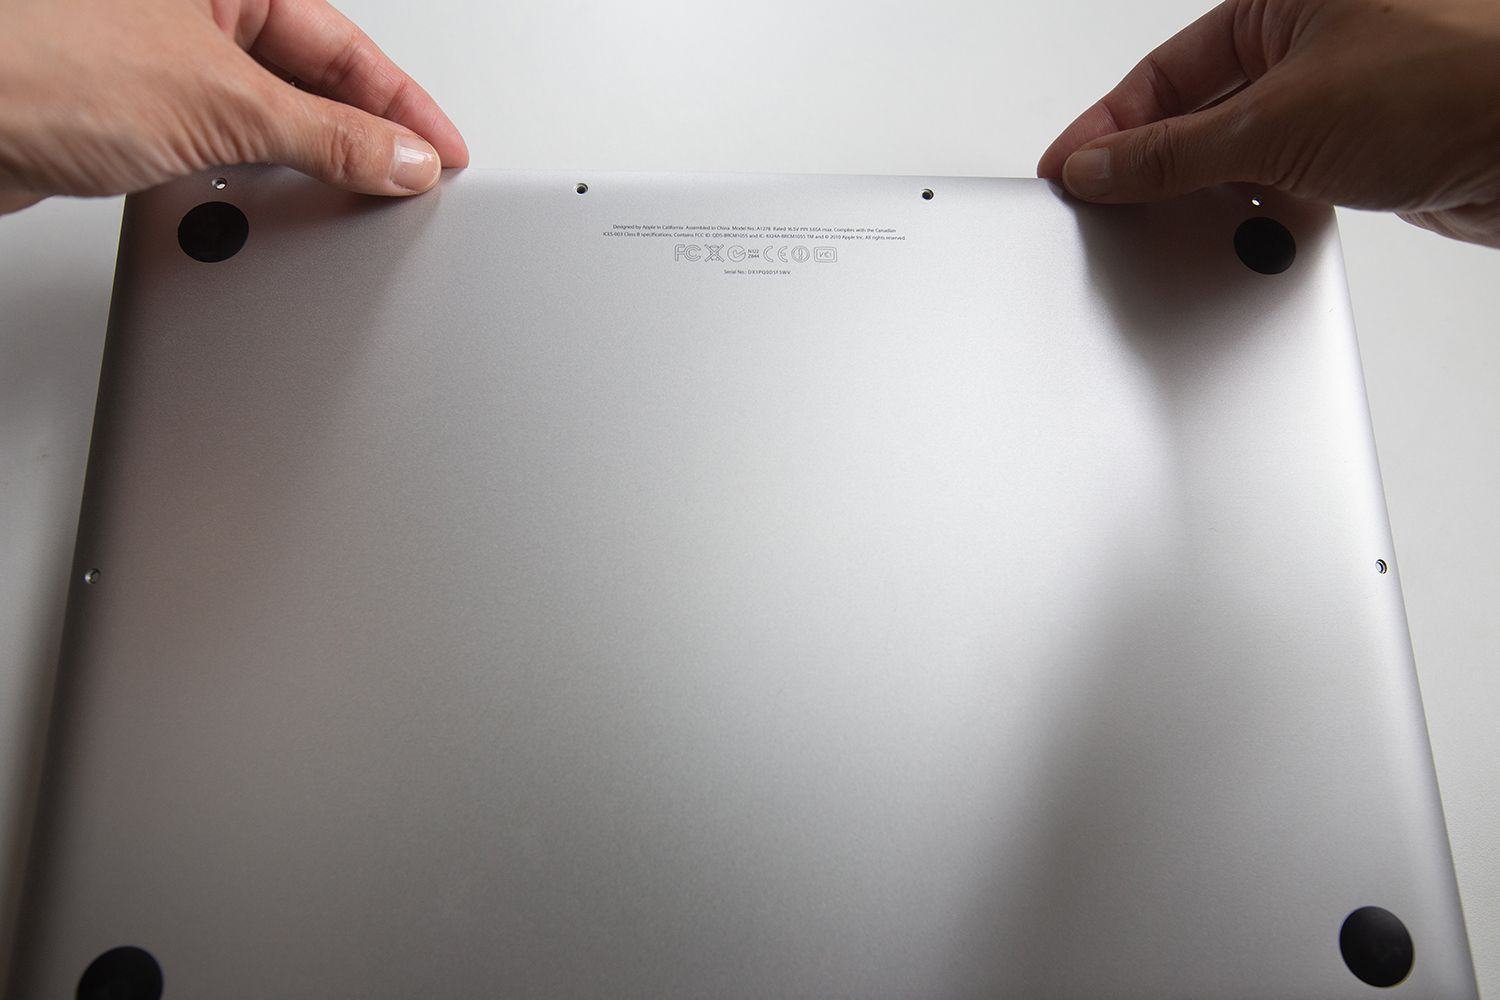 Removing the bottom lid of a MacBook Pro